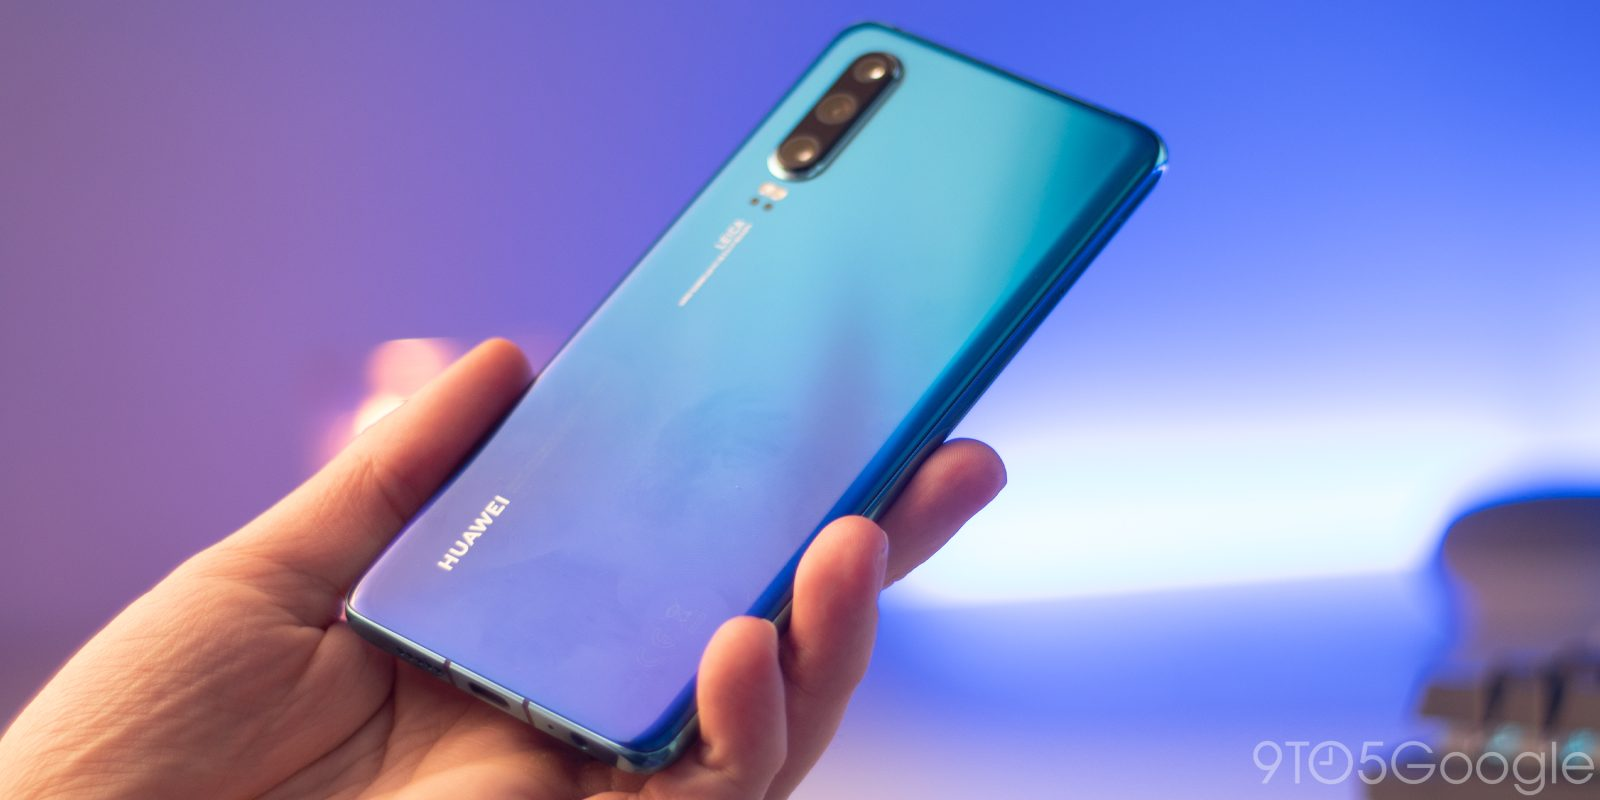 Huawei P30, P30 Pro update adds DC Dimming, more - 9to5Google